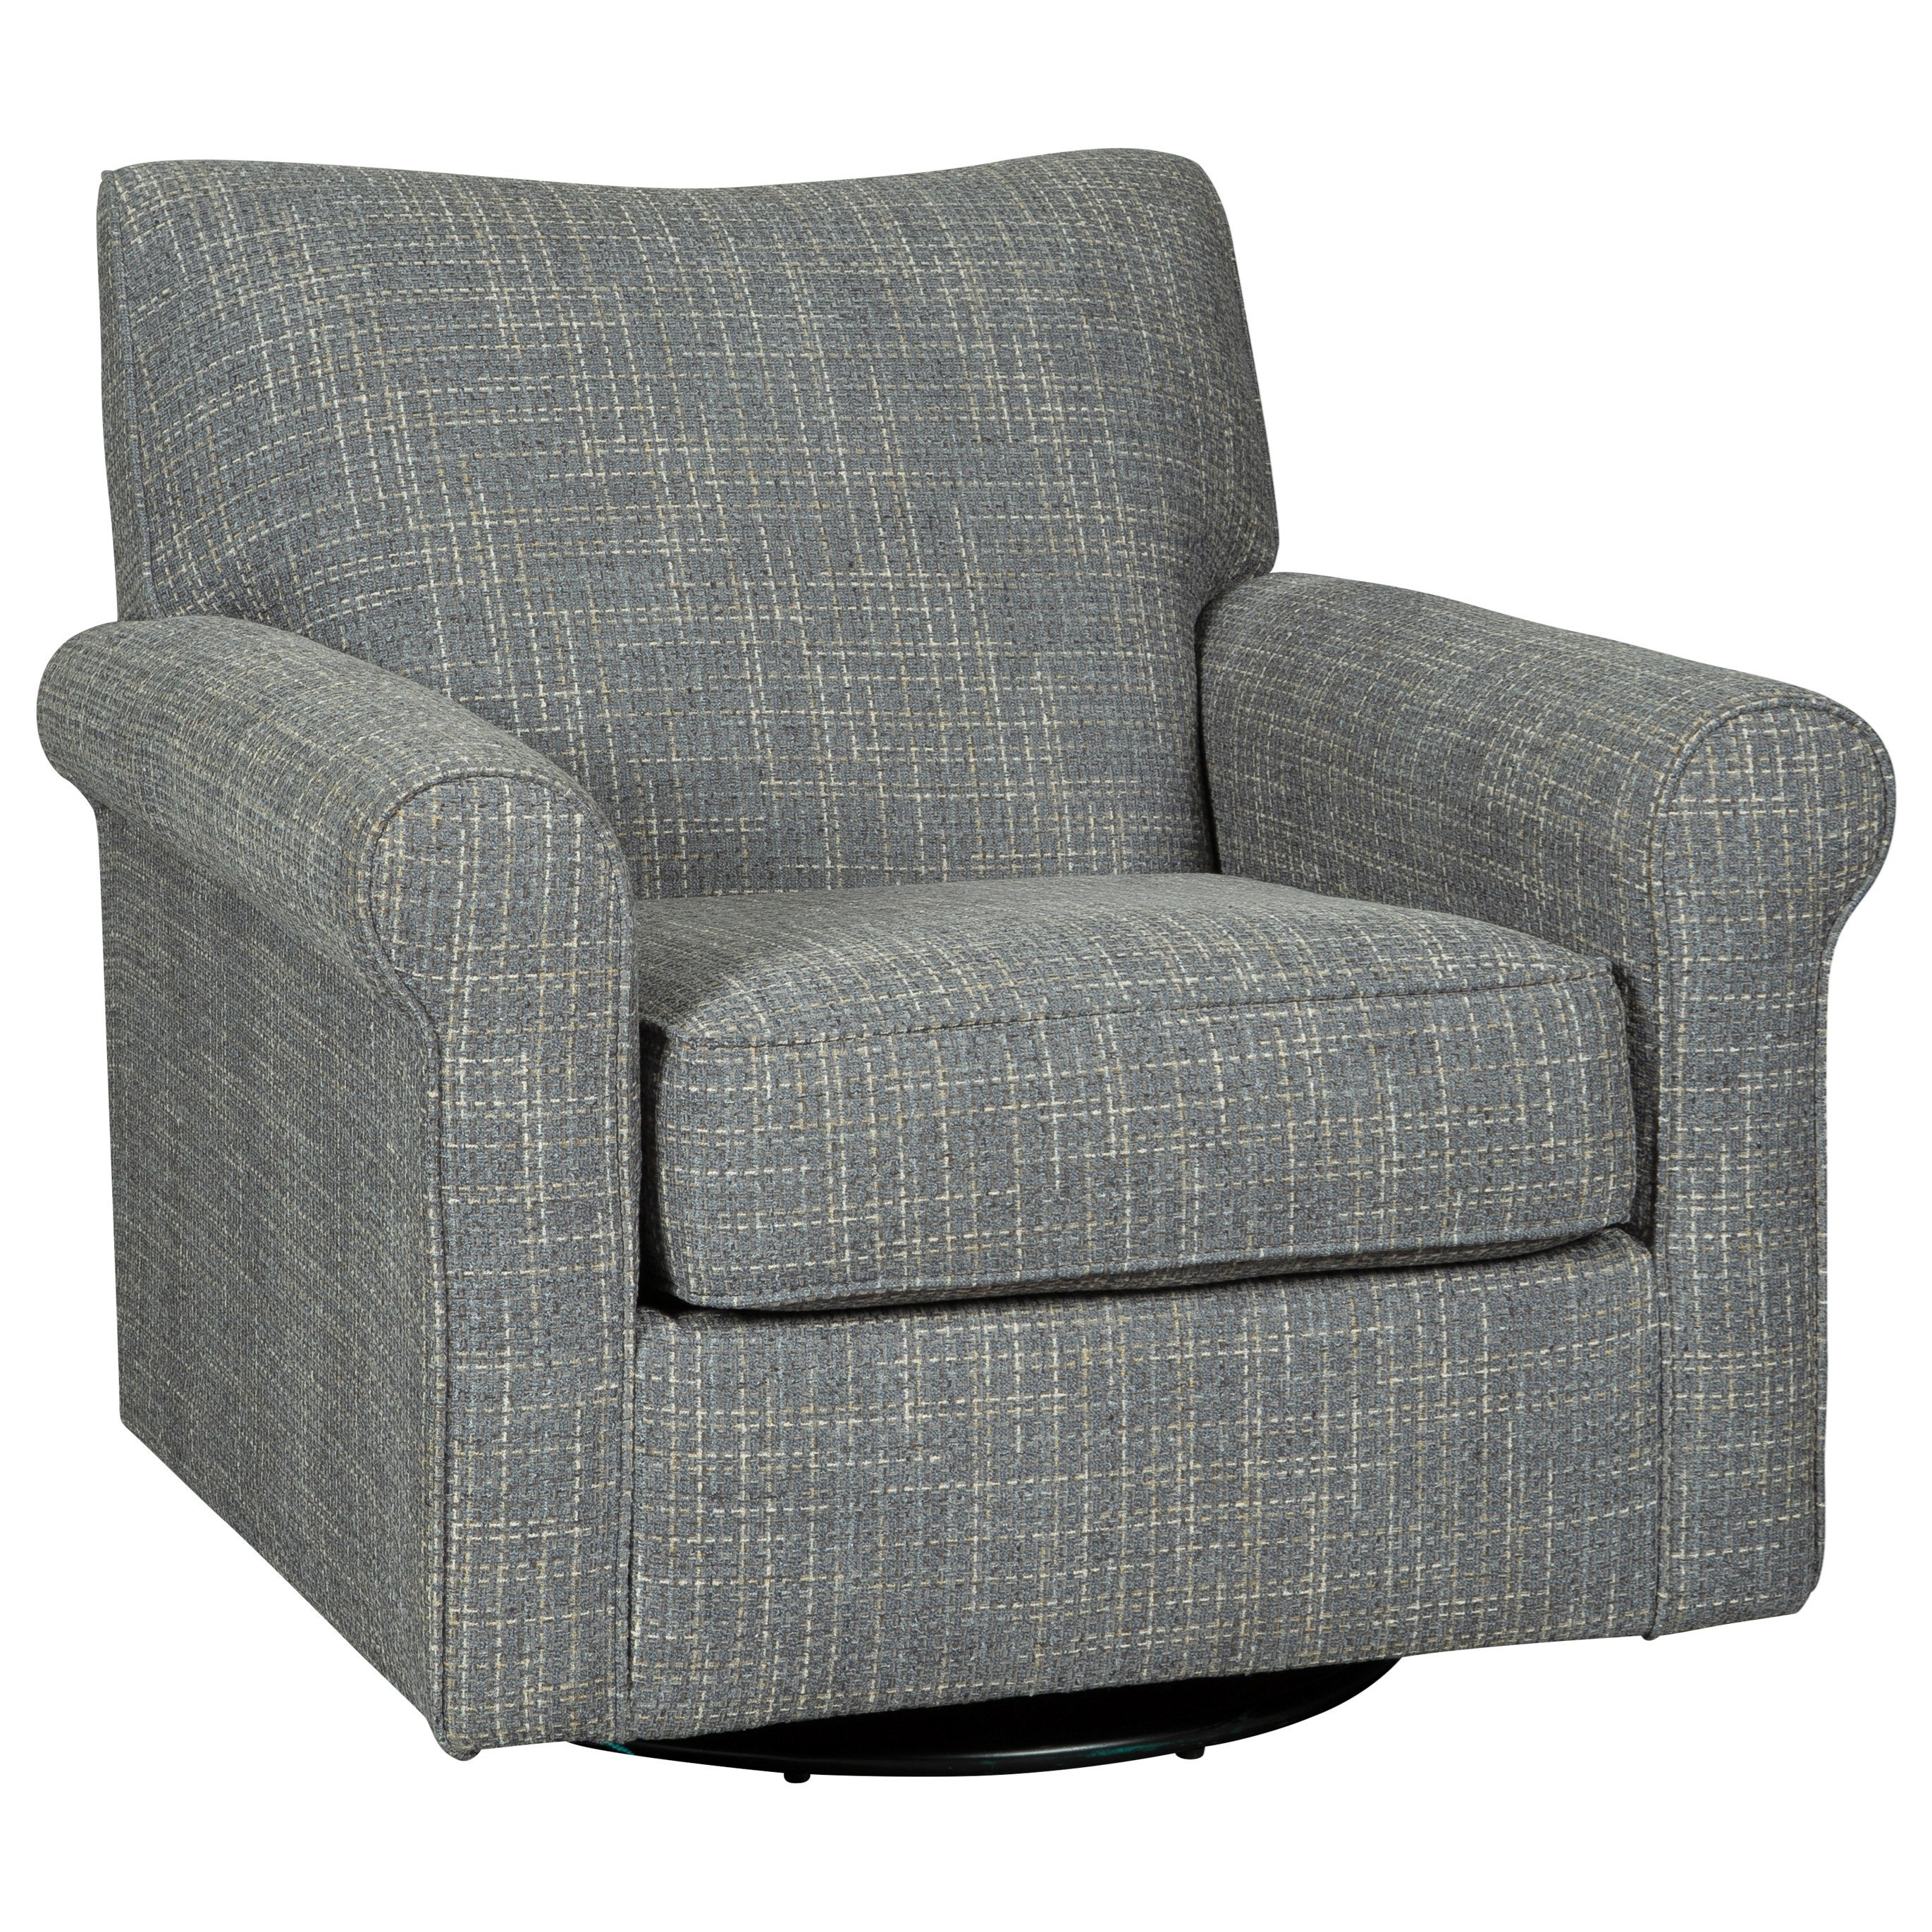 Renley Swivel Glider Accent Chair by Ashley (Signature Design) at Johnny Janosik